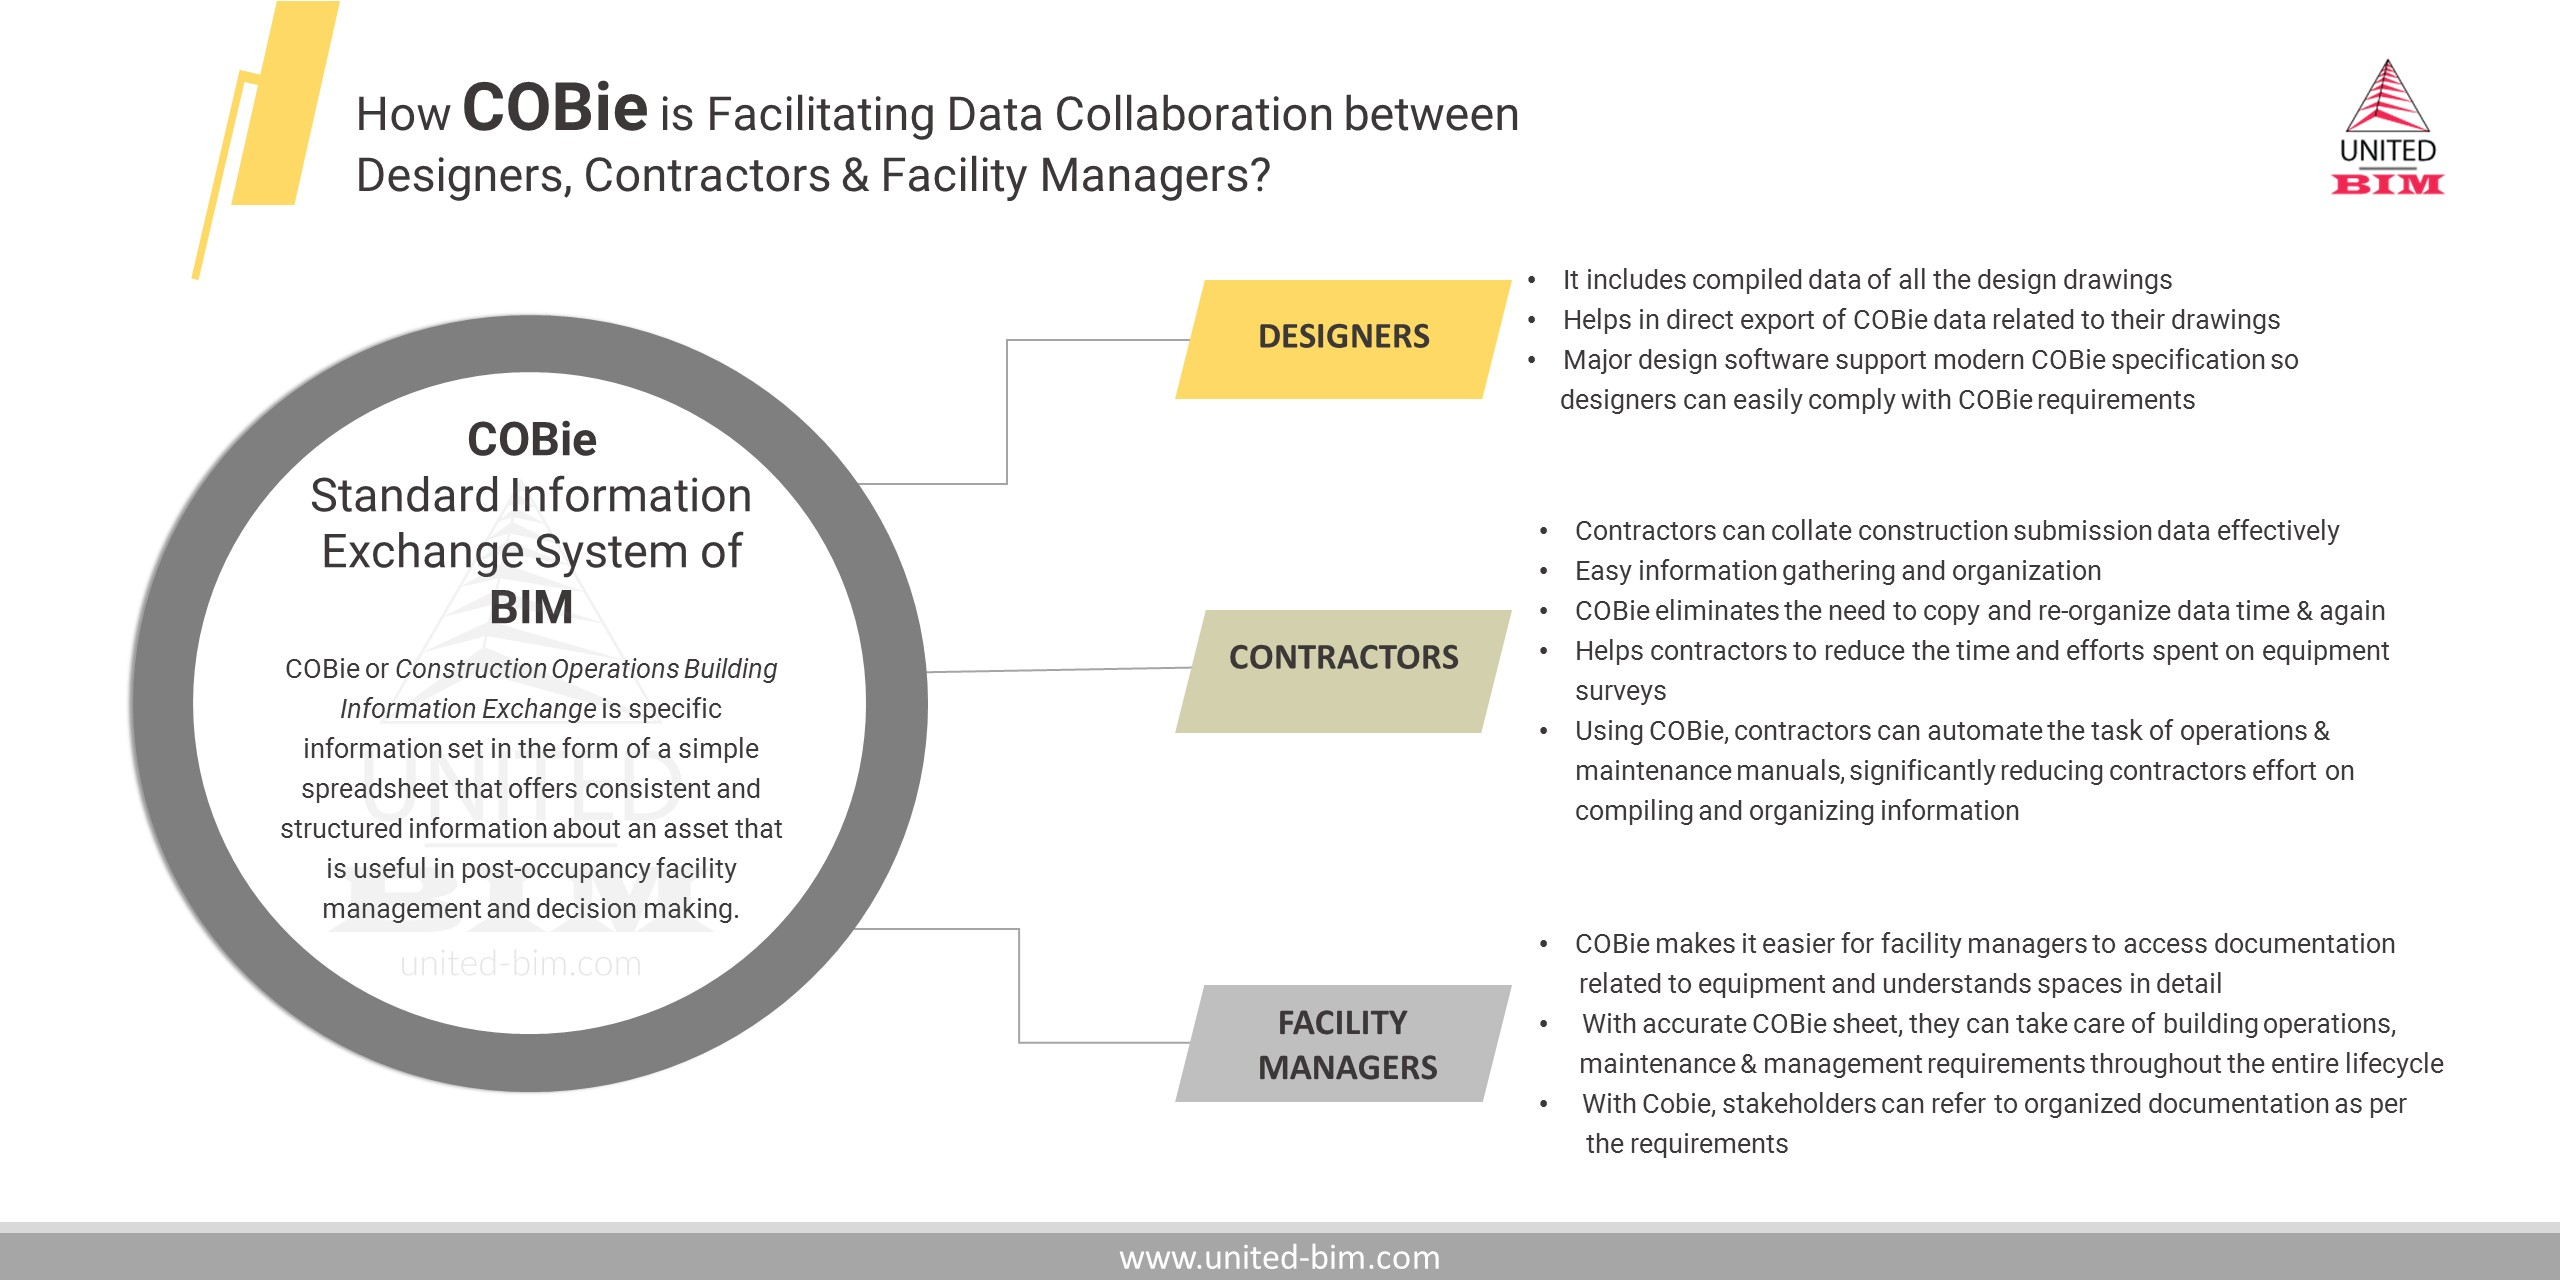 How COBie is Facilitating Data Collaboration between Designers, Contractors & Facility Managers by United-BIM